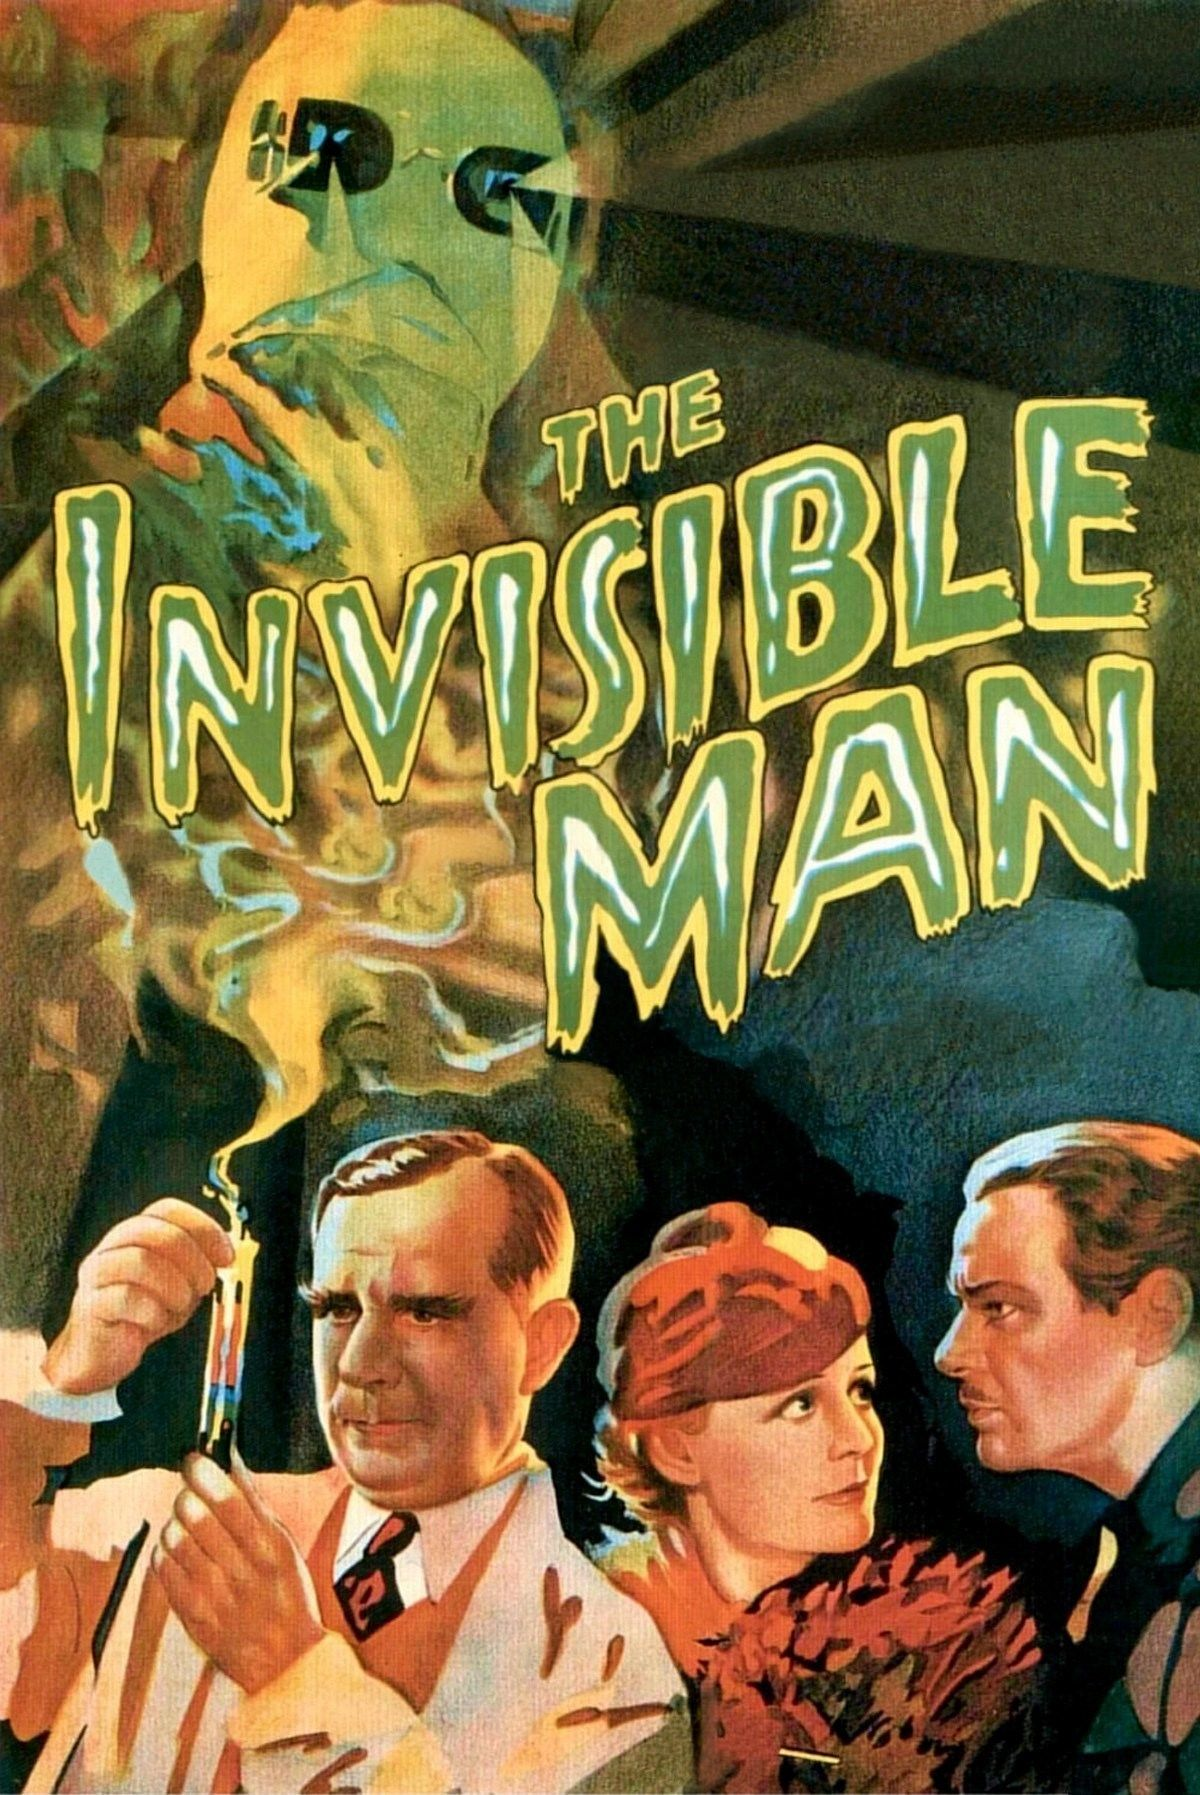 The Invisible Man (1933) - Directed by: James WhaleStarring: Claude Rains, Gloria Stuart, William HarriganRated: NR (Suggested PG for Mild Violence)Running Time: 1 h 11 mTMM Score: 4 stars out of 5STRENGTHS: Cinematography, Special Effects, Fun, Story, Old Hollywood CharmWEAKNESSES: Unsympathetic Protagonist/ Villain